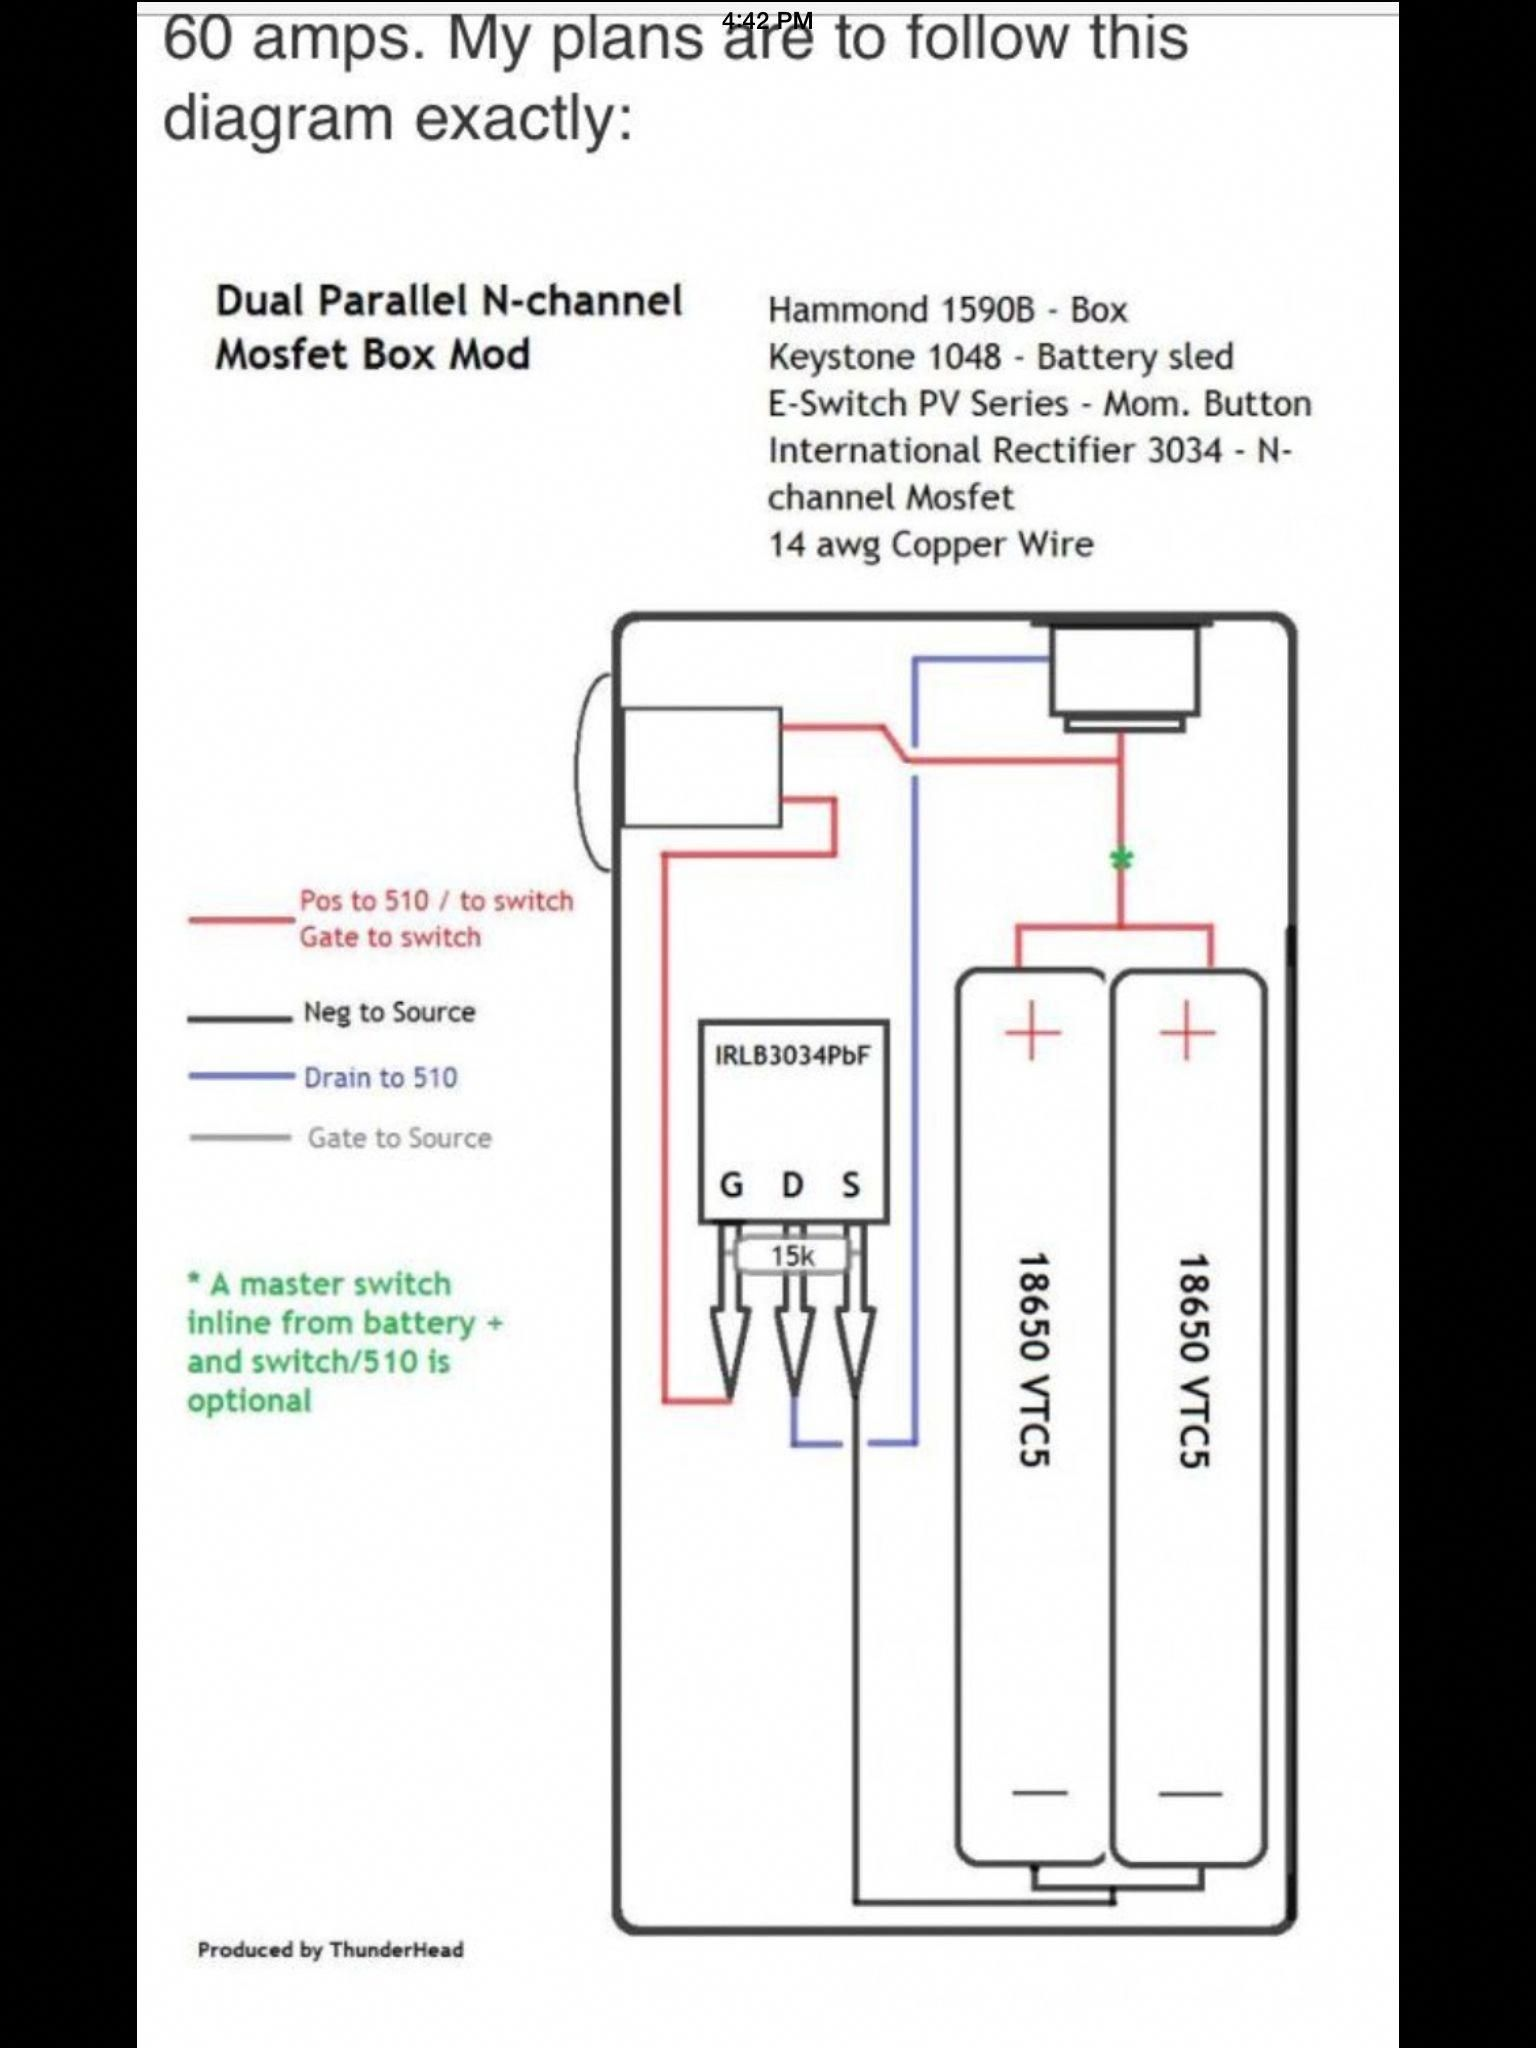 hight resolution of mod box diagram wiring diagram load dual parallel mosfet box mod diagram customecigmods e cigs in